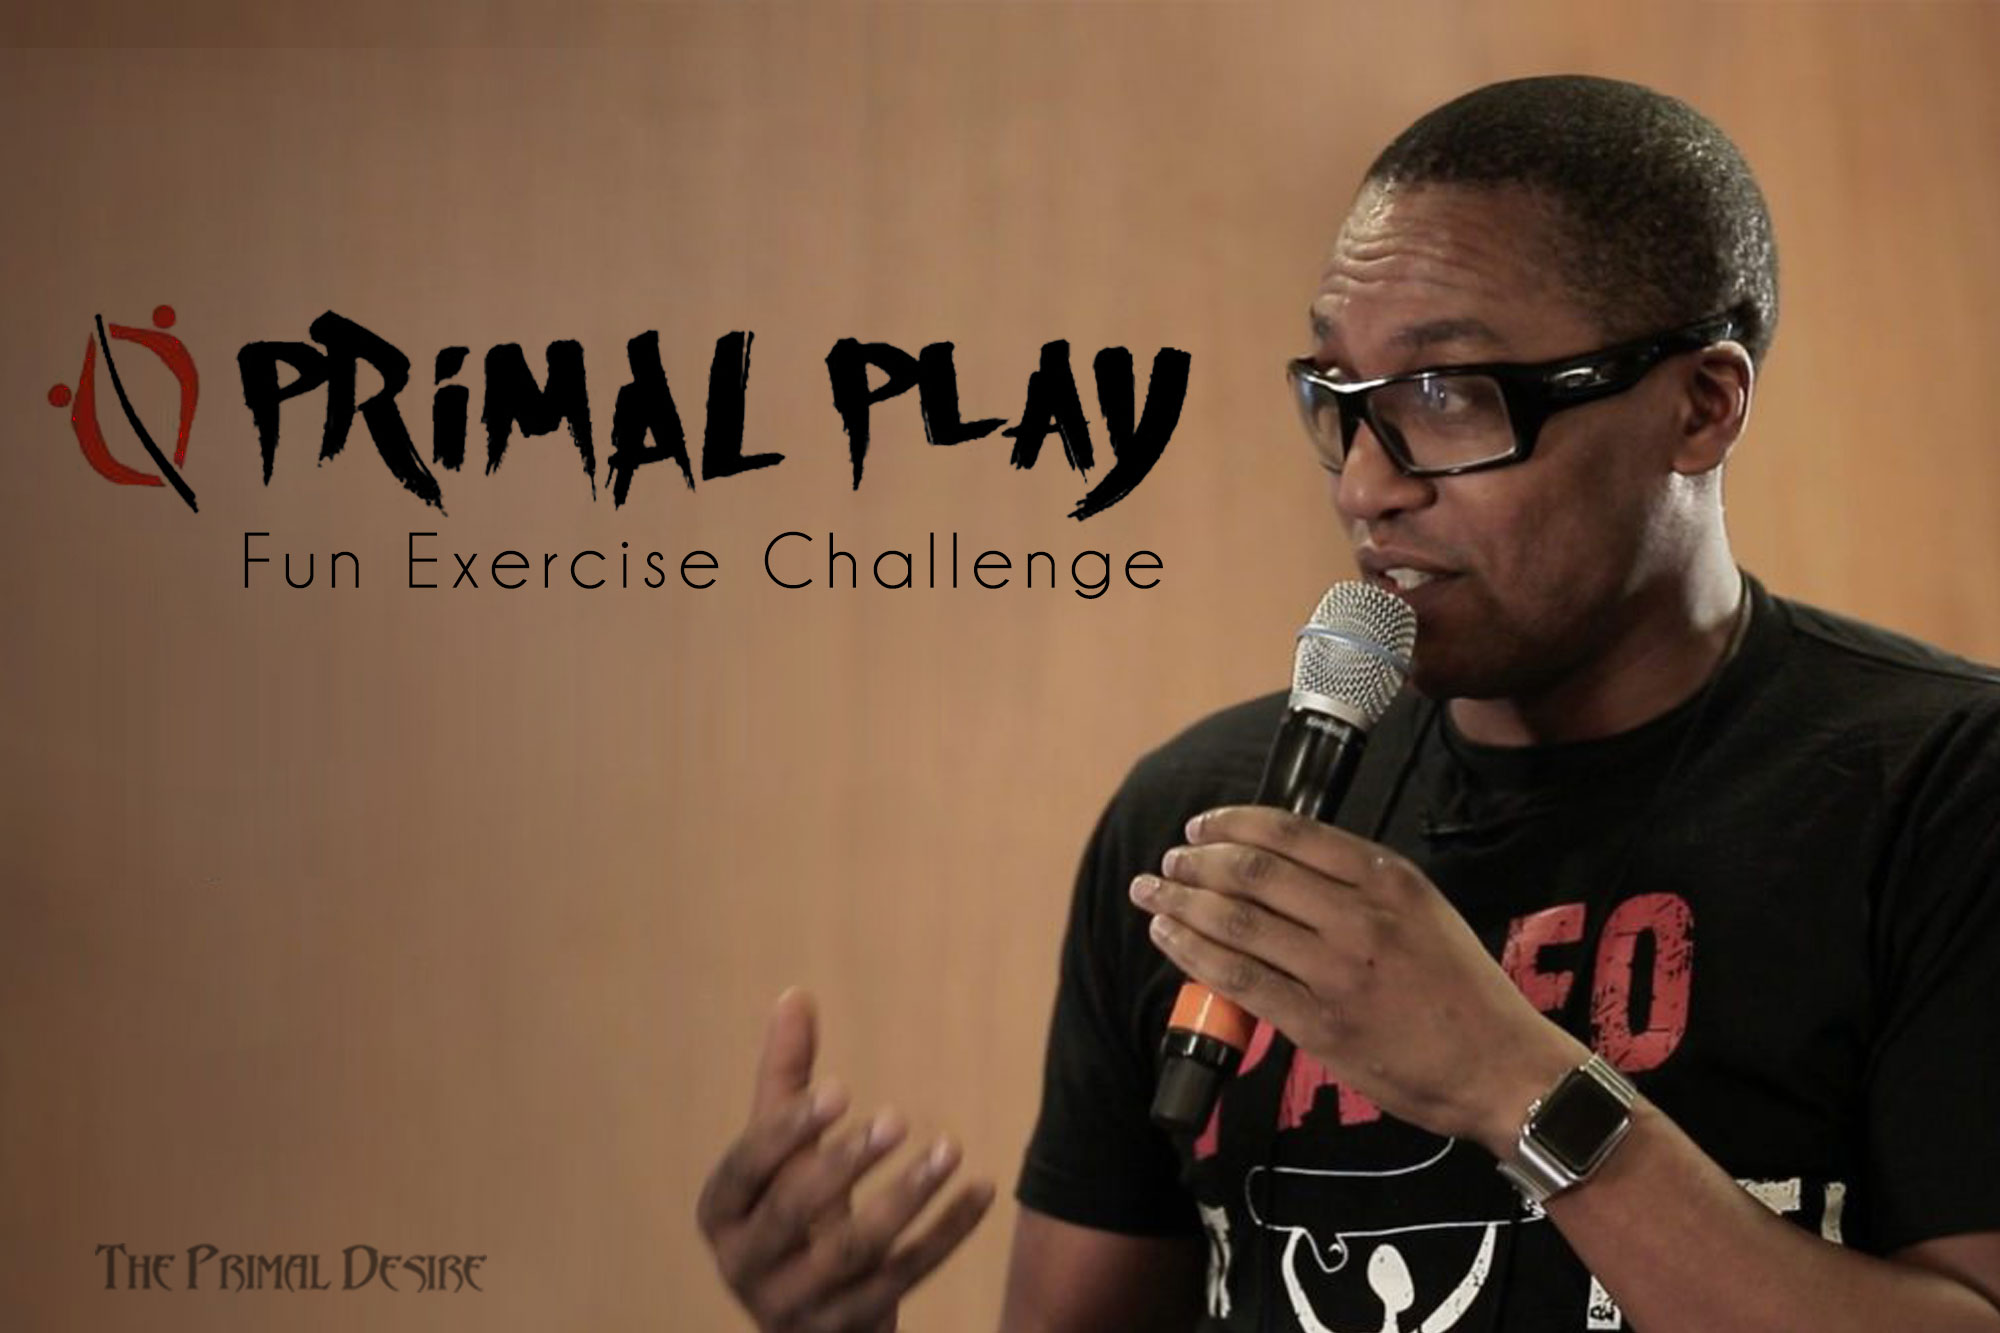 """Get back to exercising your inner child with the 30-day Primal Play Program fun exercise challenge of """"play movement"""". Reclaim the joy of movement! https://www.theprimaldesire.com/fun-exercise-challenge-with-primal-play/"""